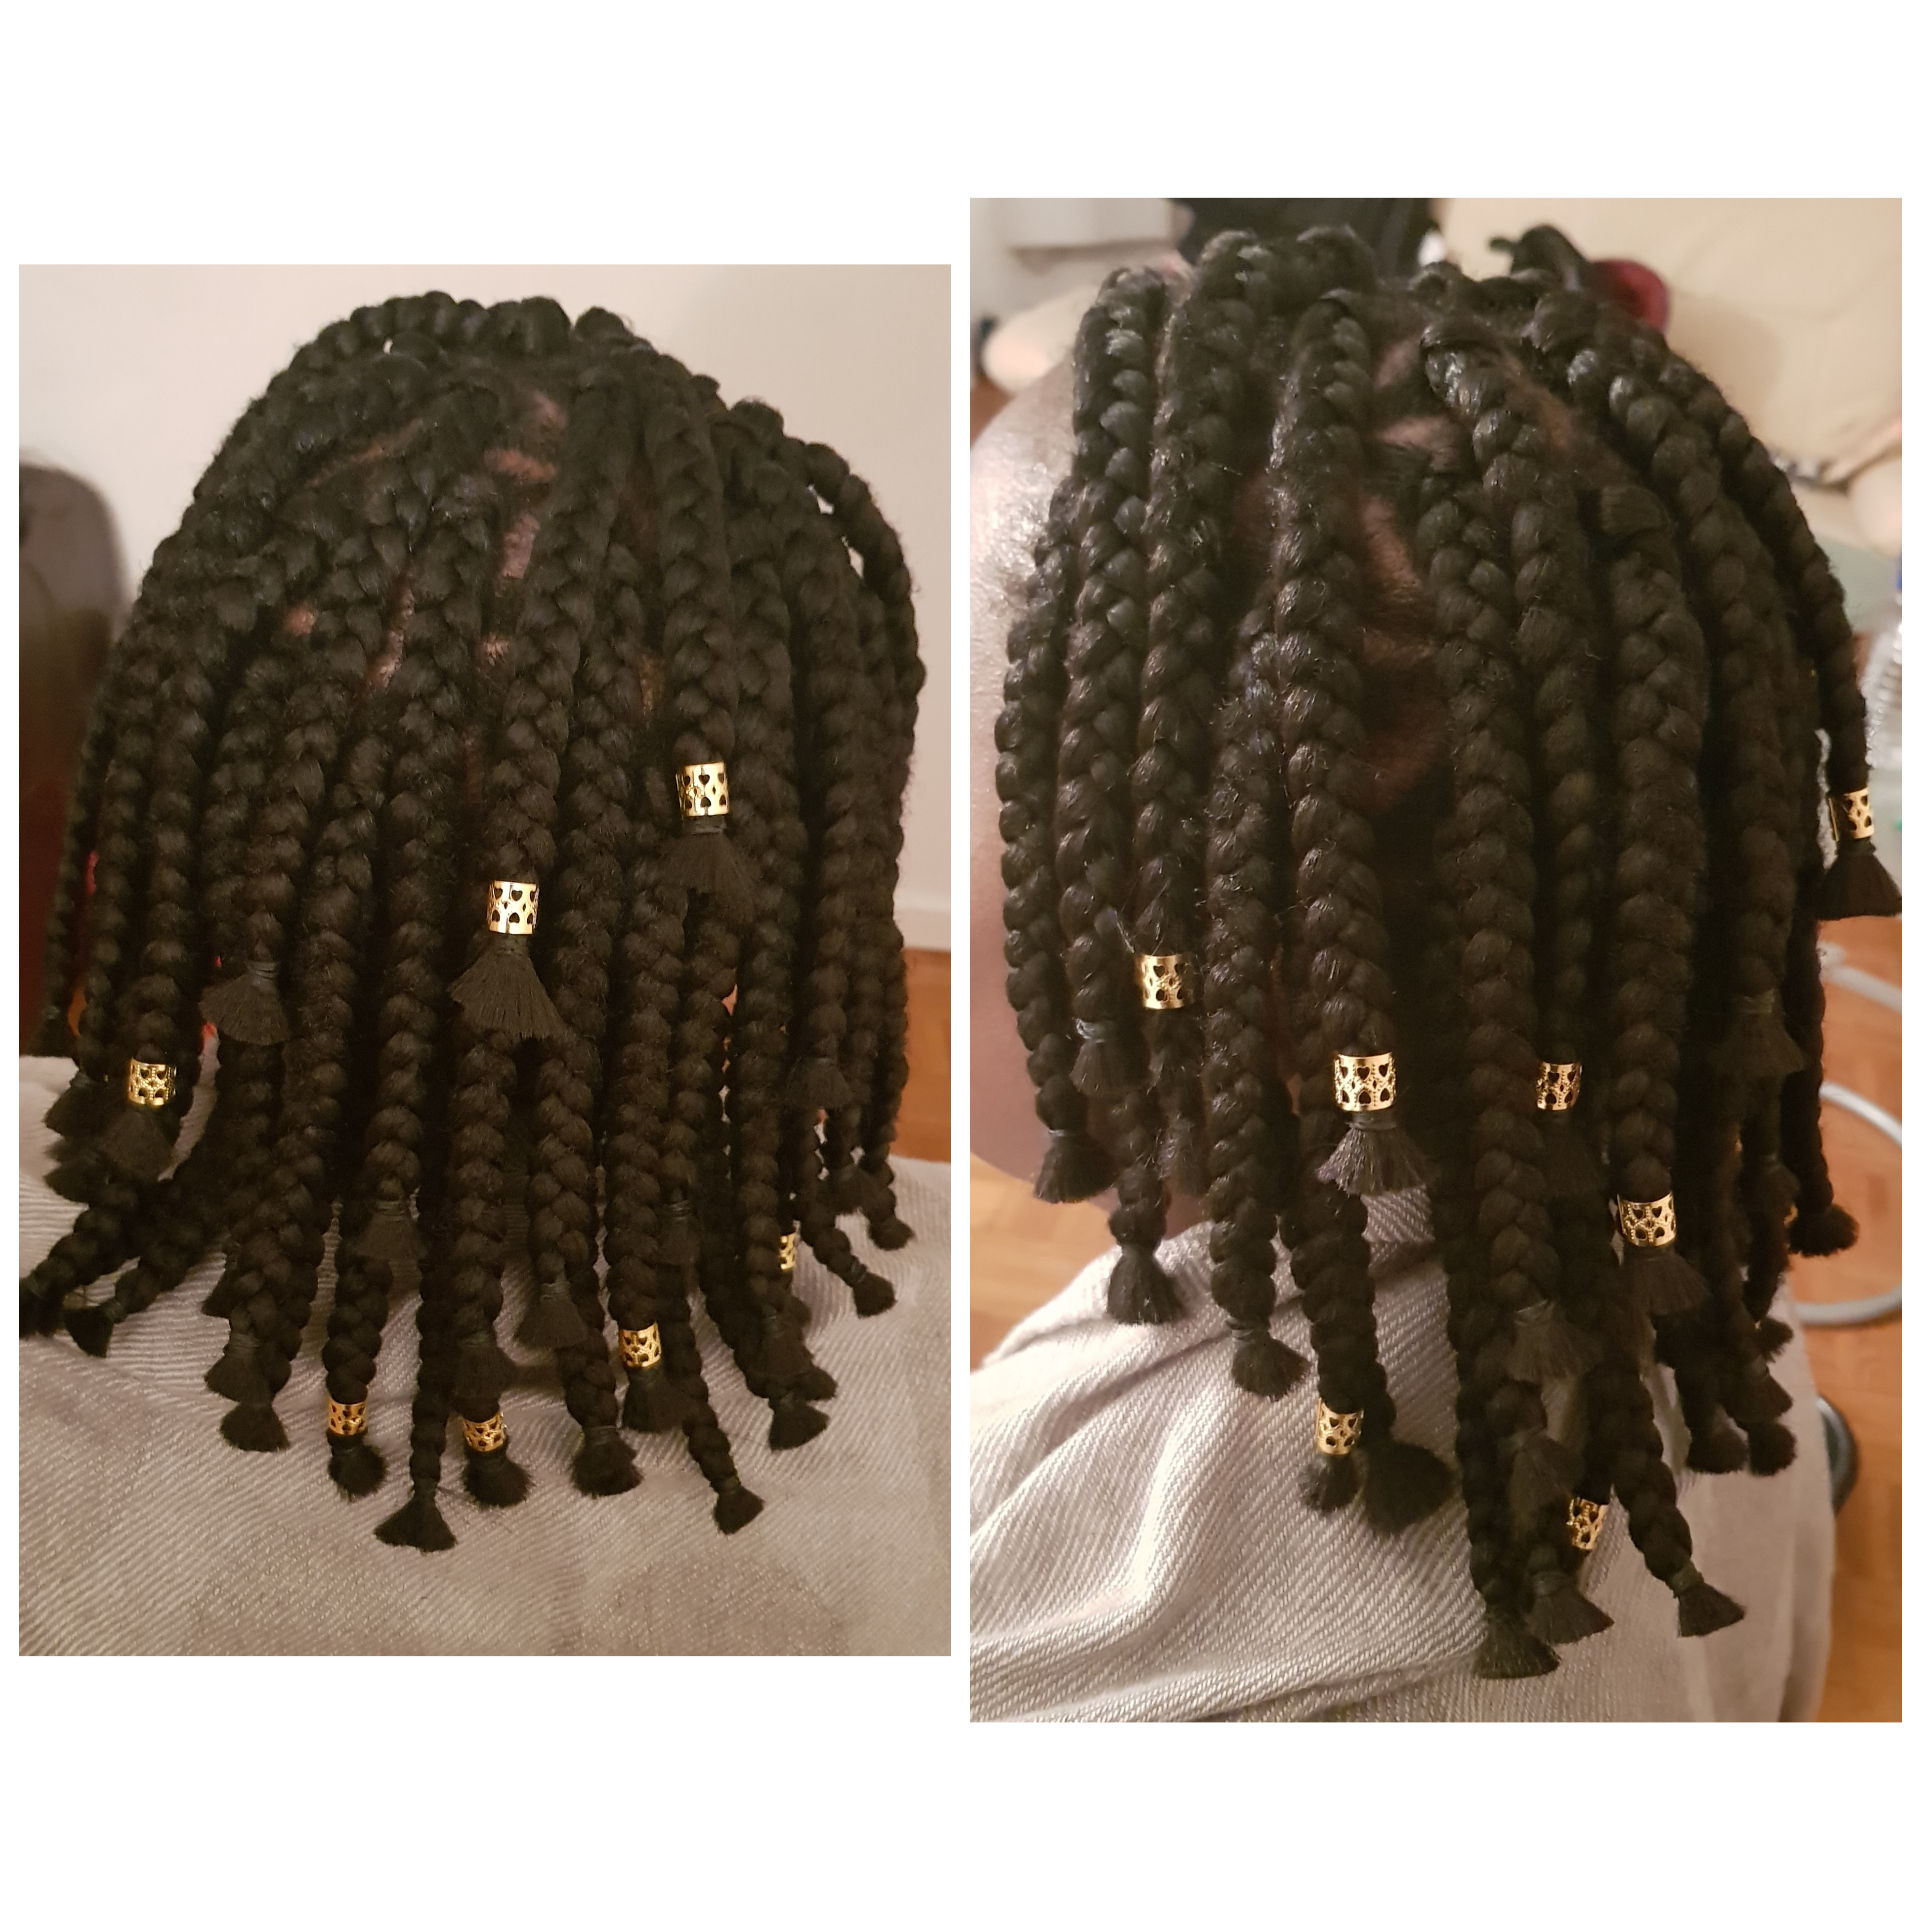 salon de coiffure afro tresse tresses box braids crochet braids vanilles tissages paris 75 77 78 91 92 93 94 95 AIRYIVZP